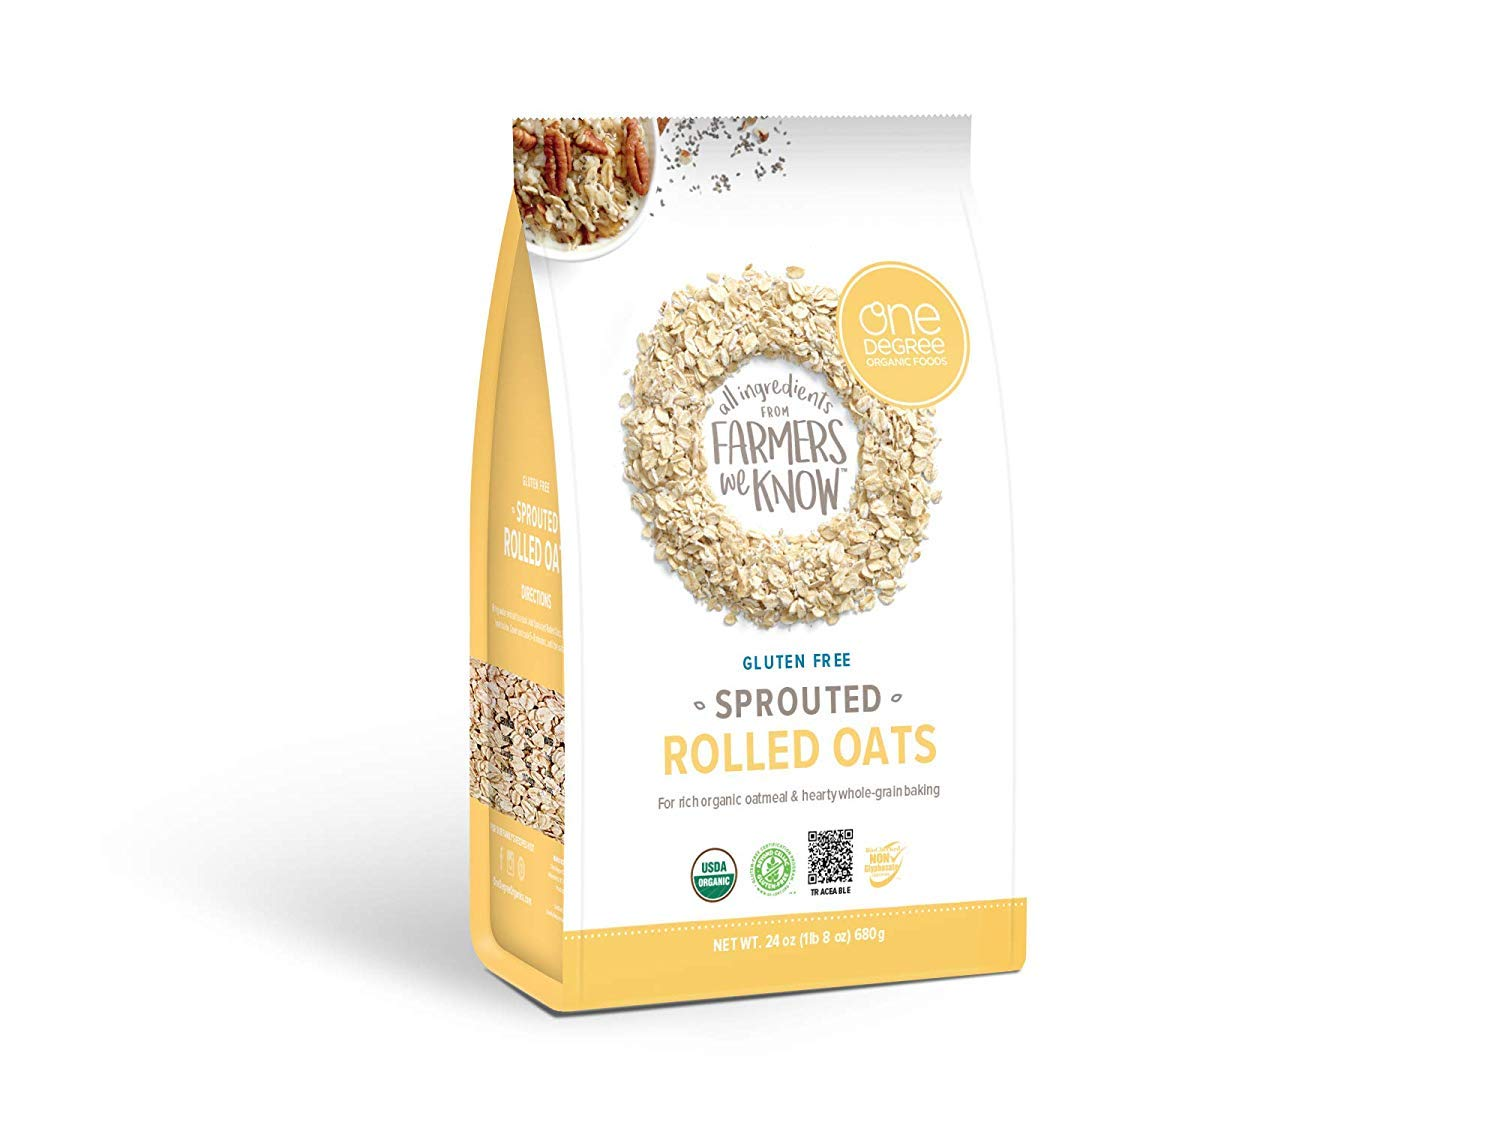 One Degree Organic Foods Gluten-Free Sprouted Rolled Oats, 24 Ounces (4 Packs)